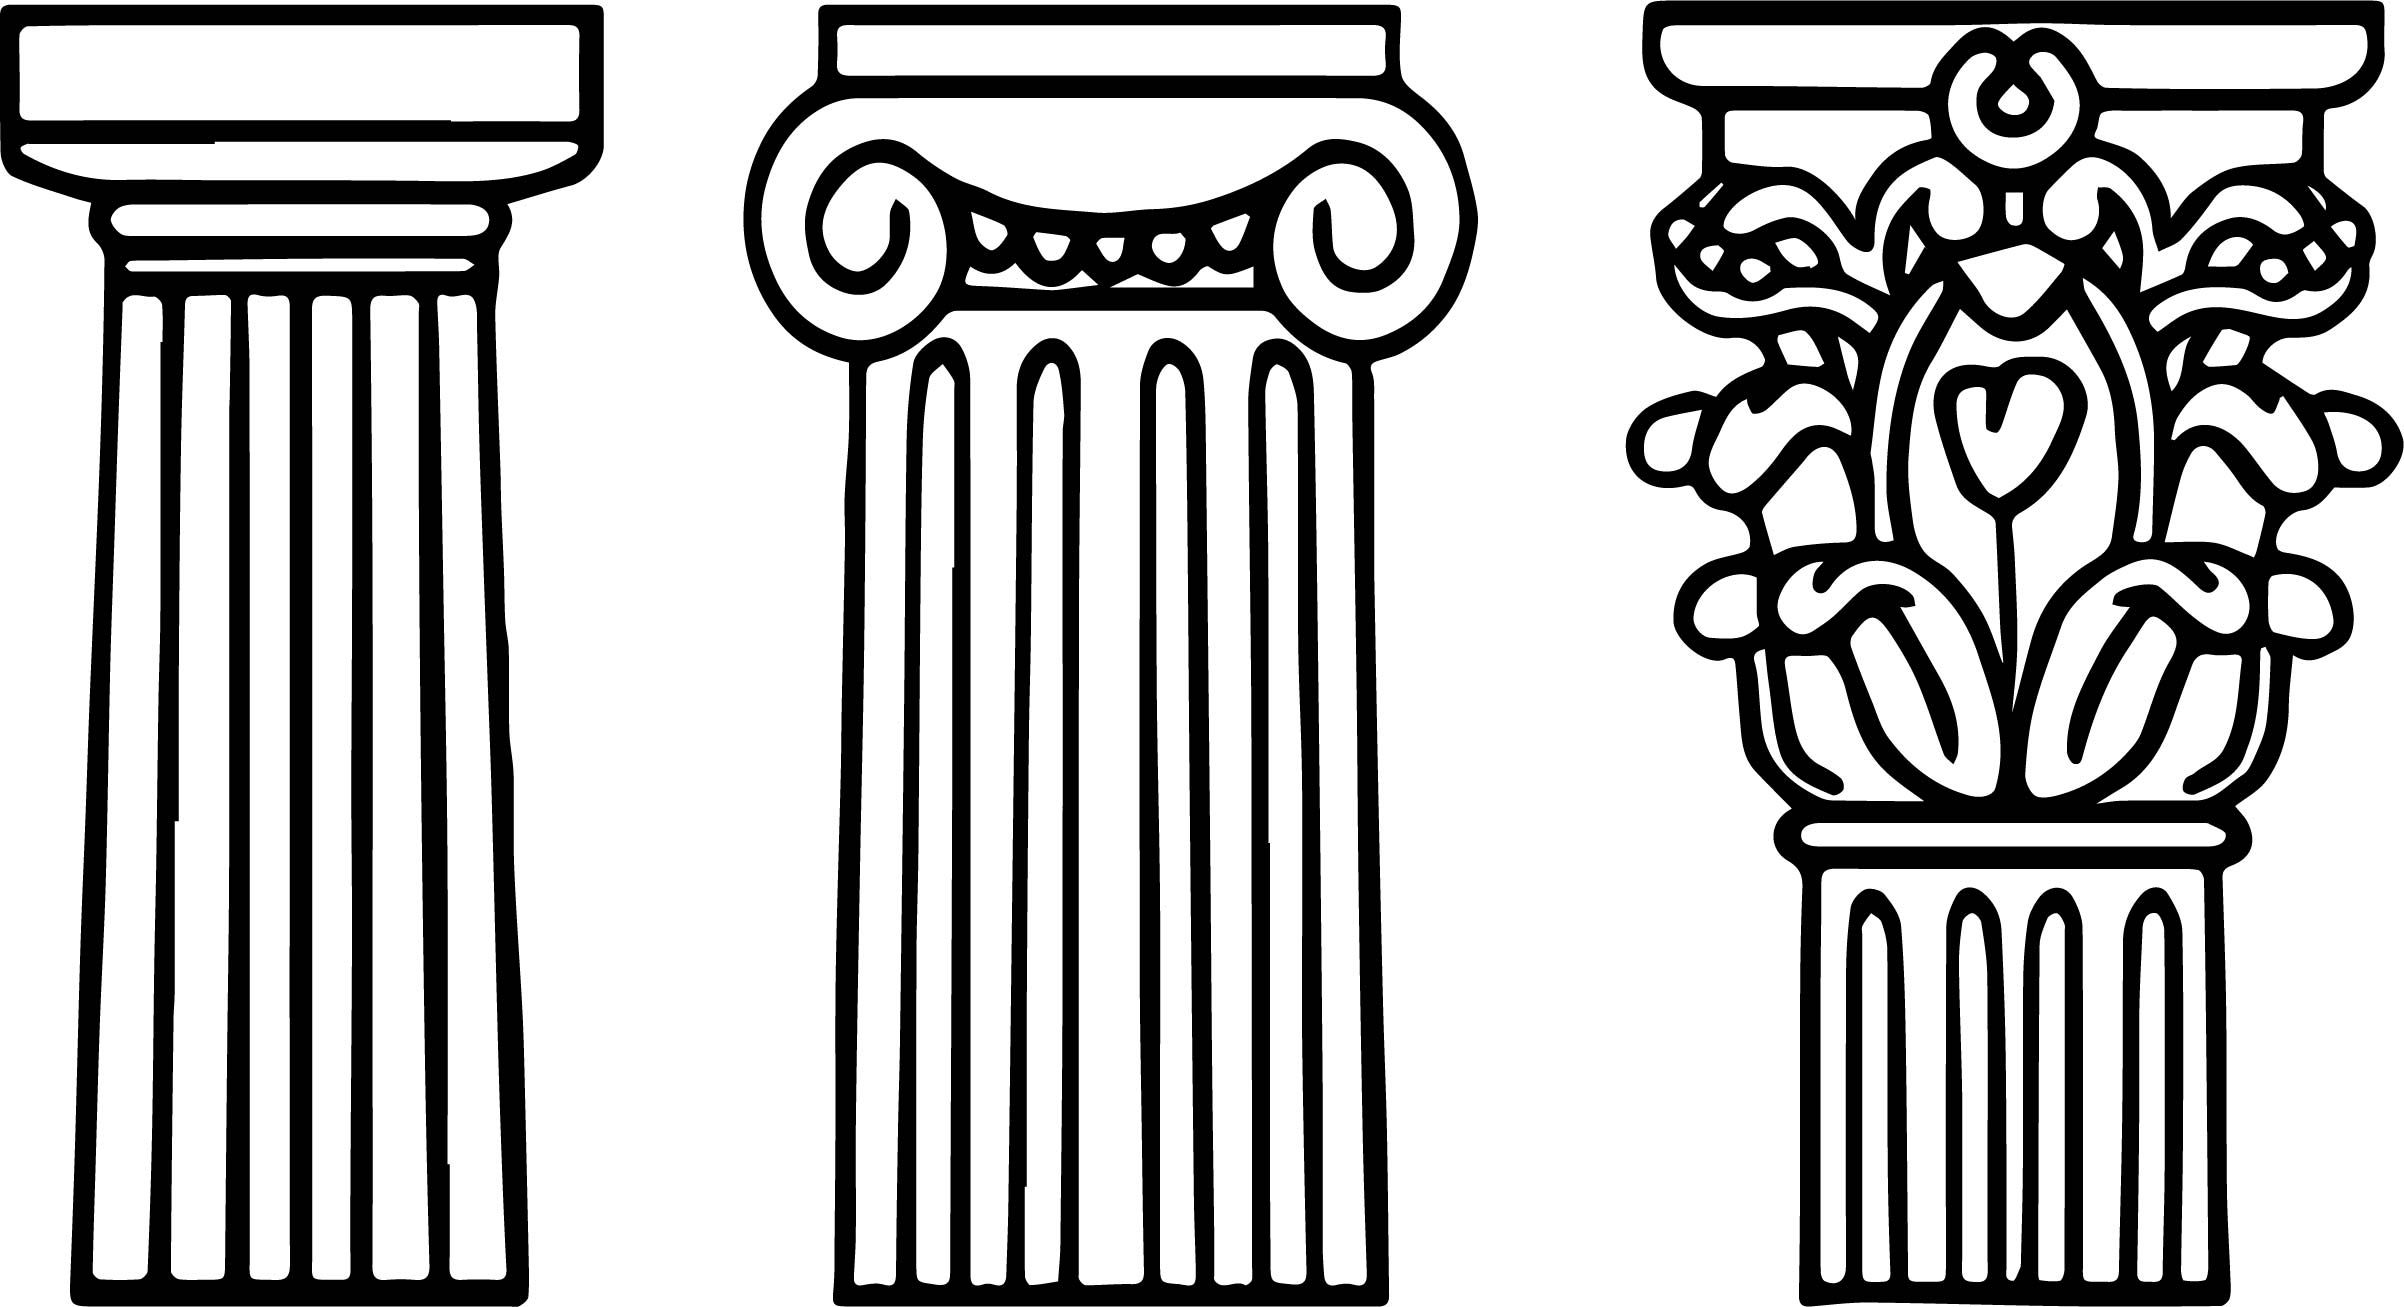 Awesome Architecture Columns Coloring Page Ancient Greece Art